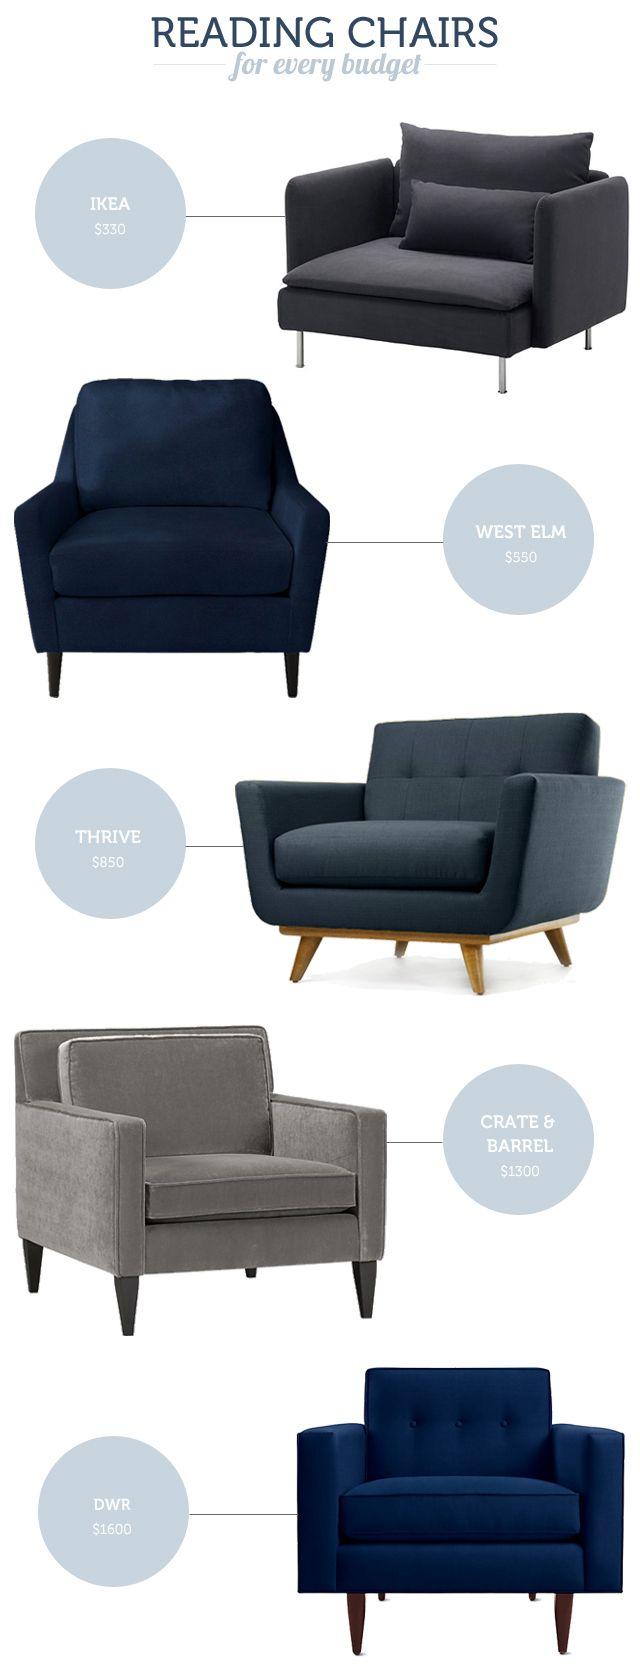 How to create a reading nook - a selection of comfy reading chairs to suit every budget